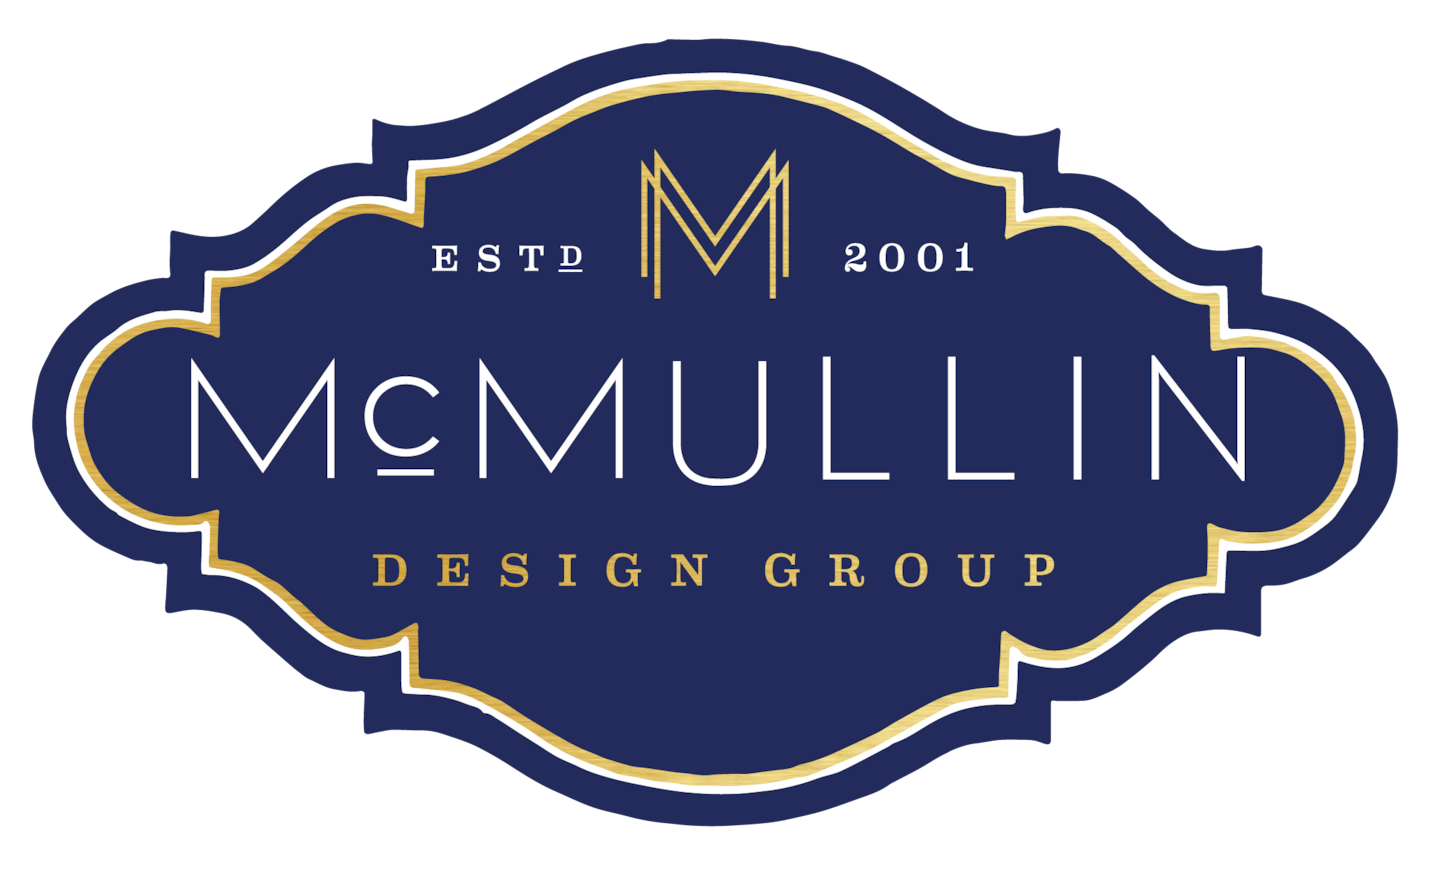 The McMullin Design Group LLC